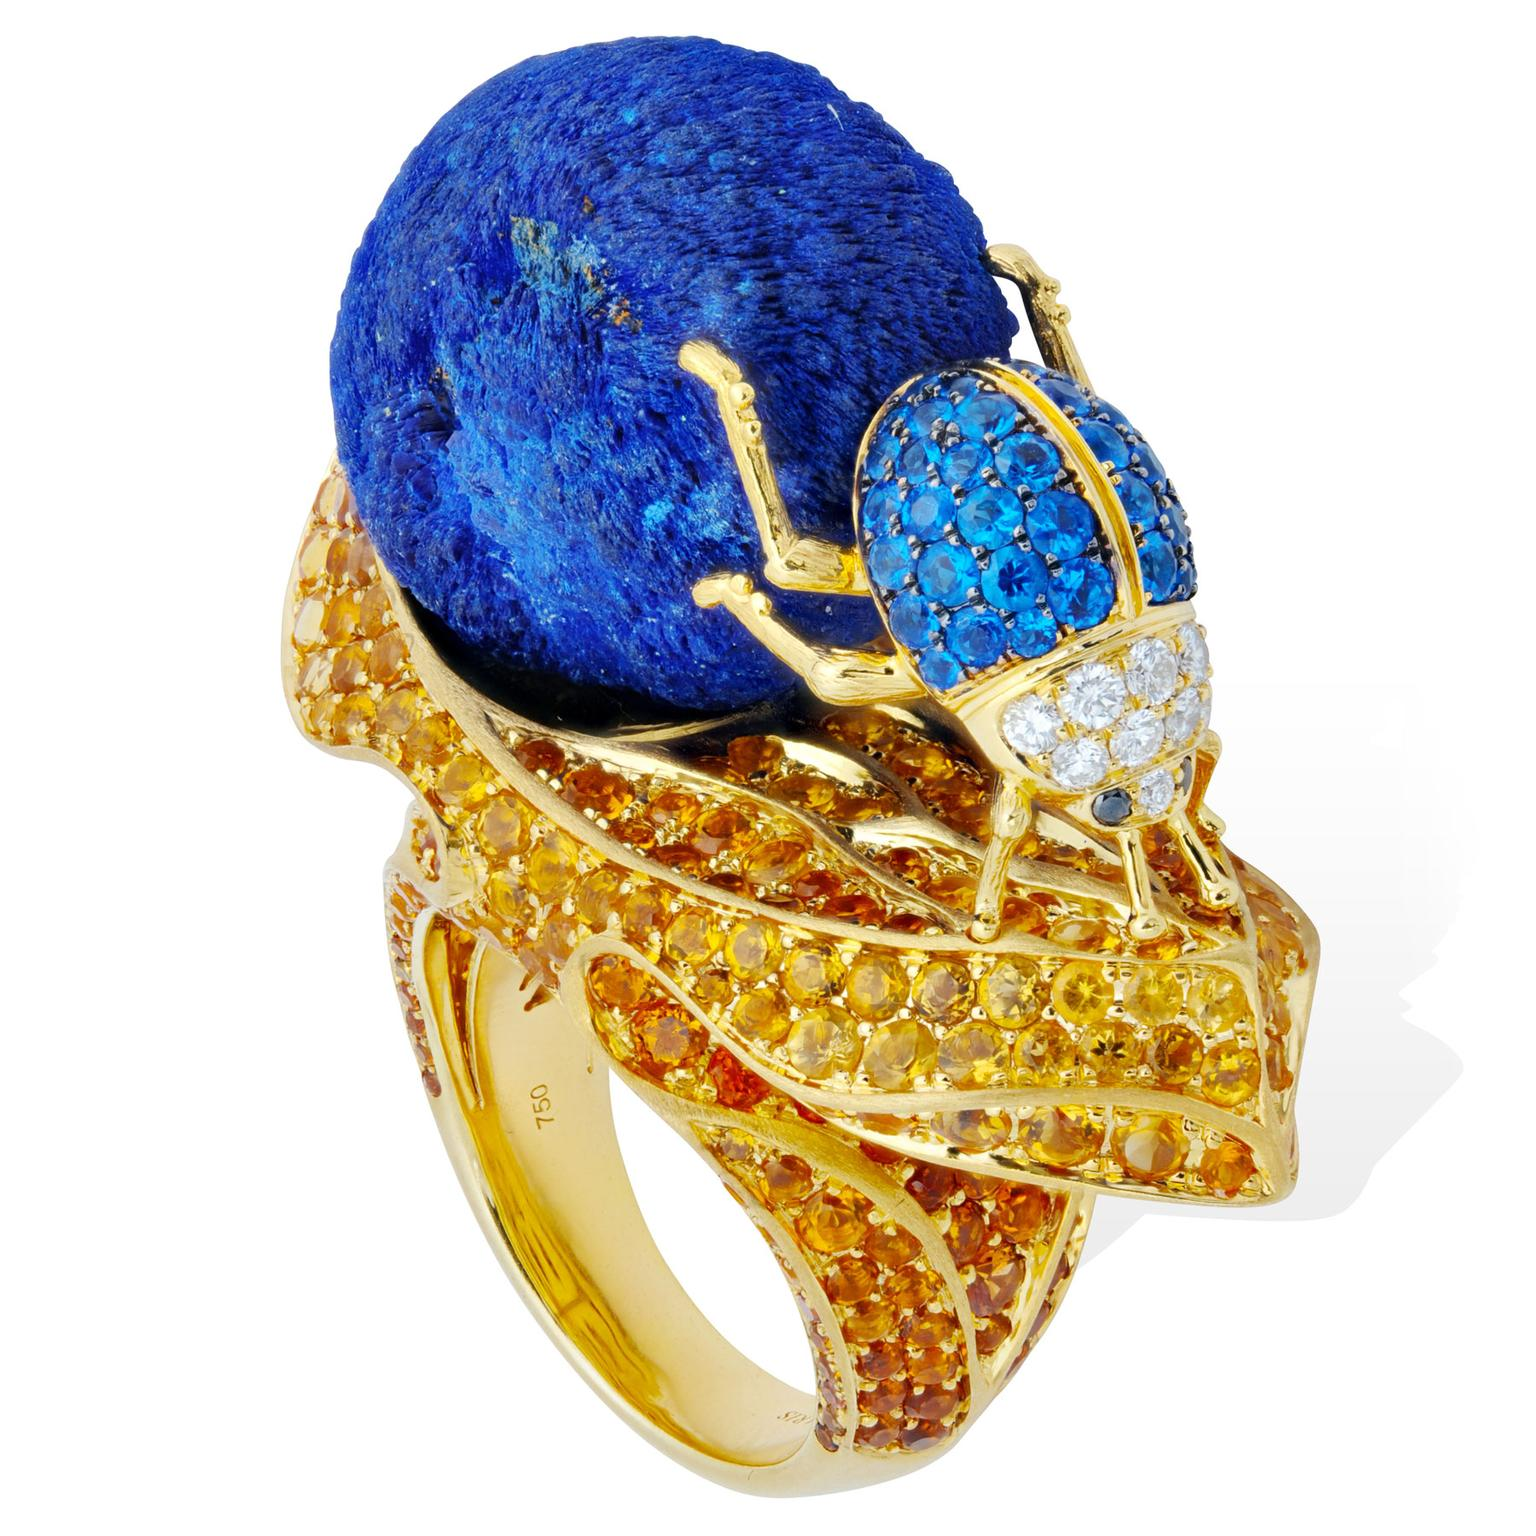 "Lydia Courteille Sahara azurite ""dung ball"" ring"